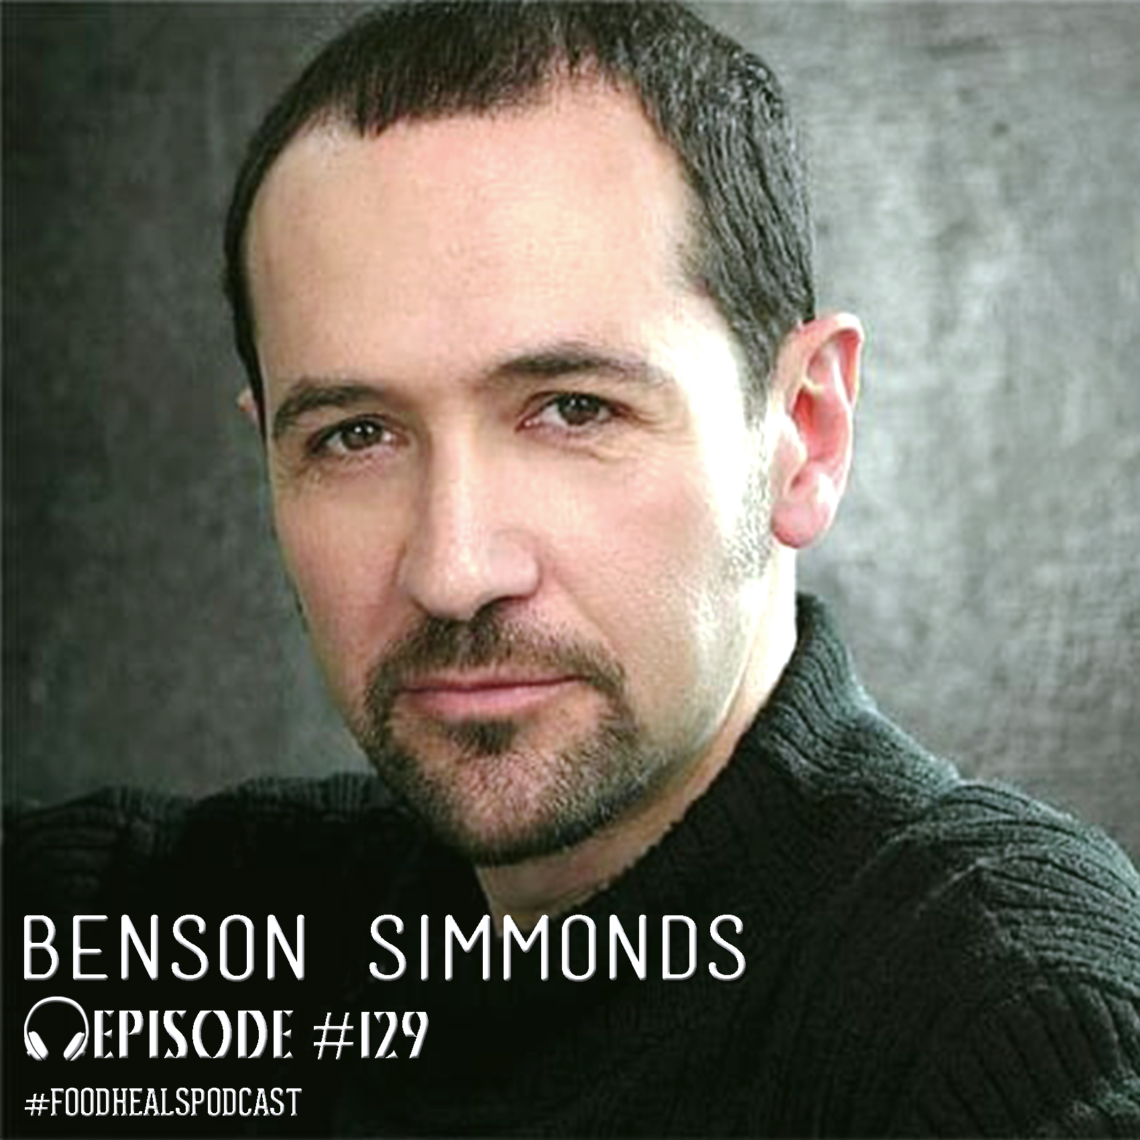 Benson Simmonds, Master Energy Healer